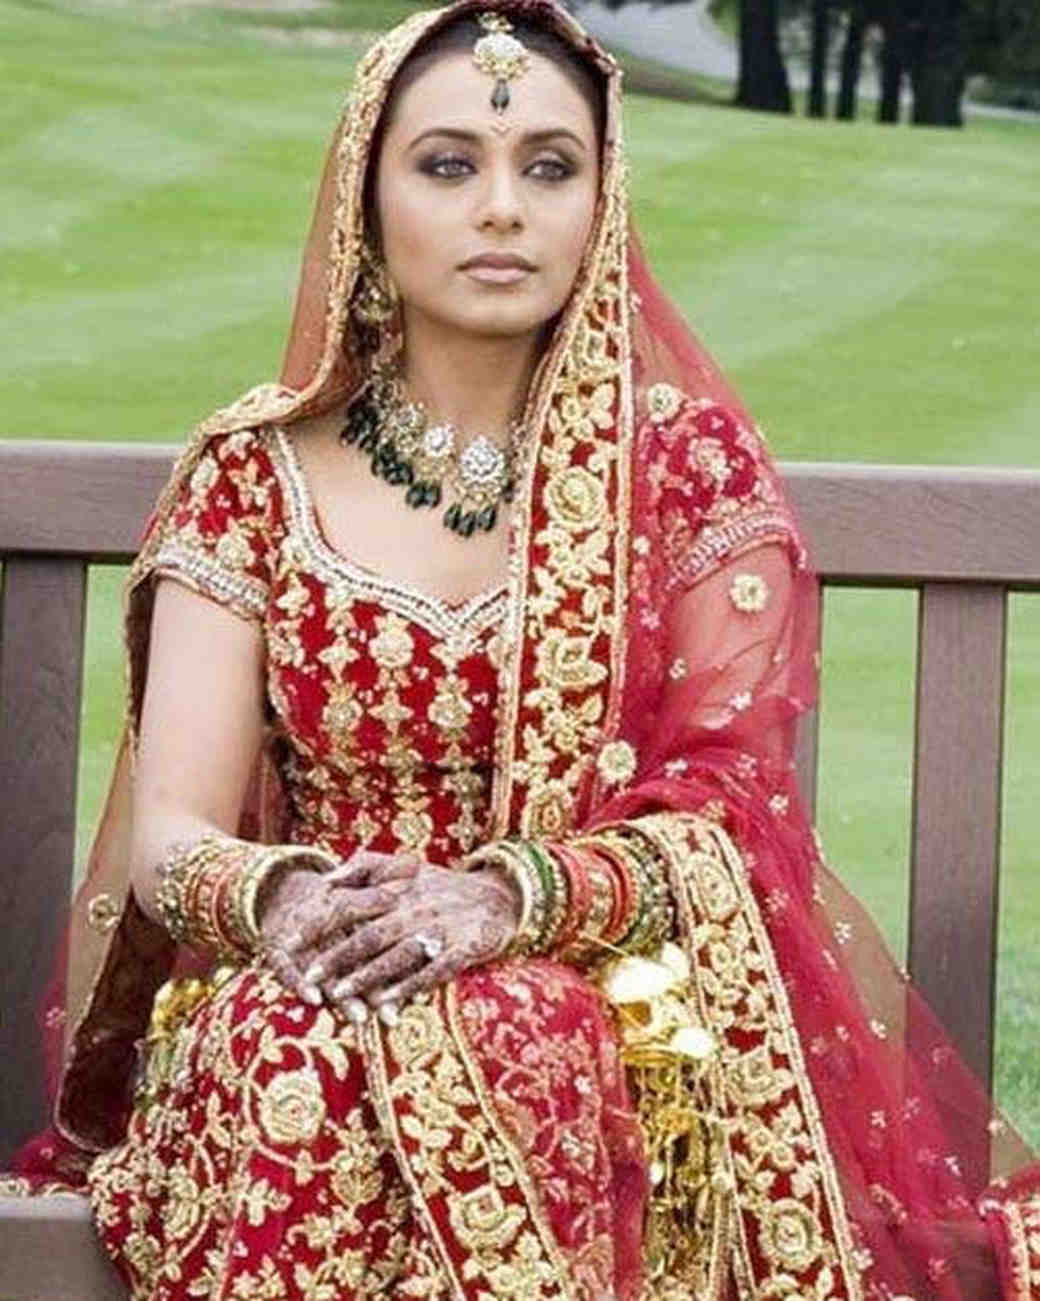 movie-wedding-dresses-kabhi-alvida-naa-kehna-rani-mukerji-0316.jpg